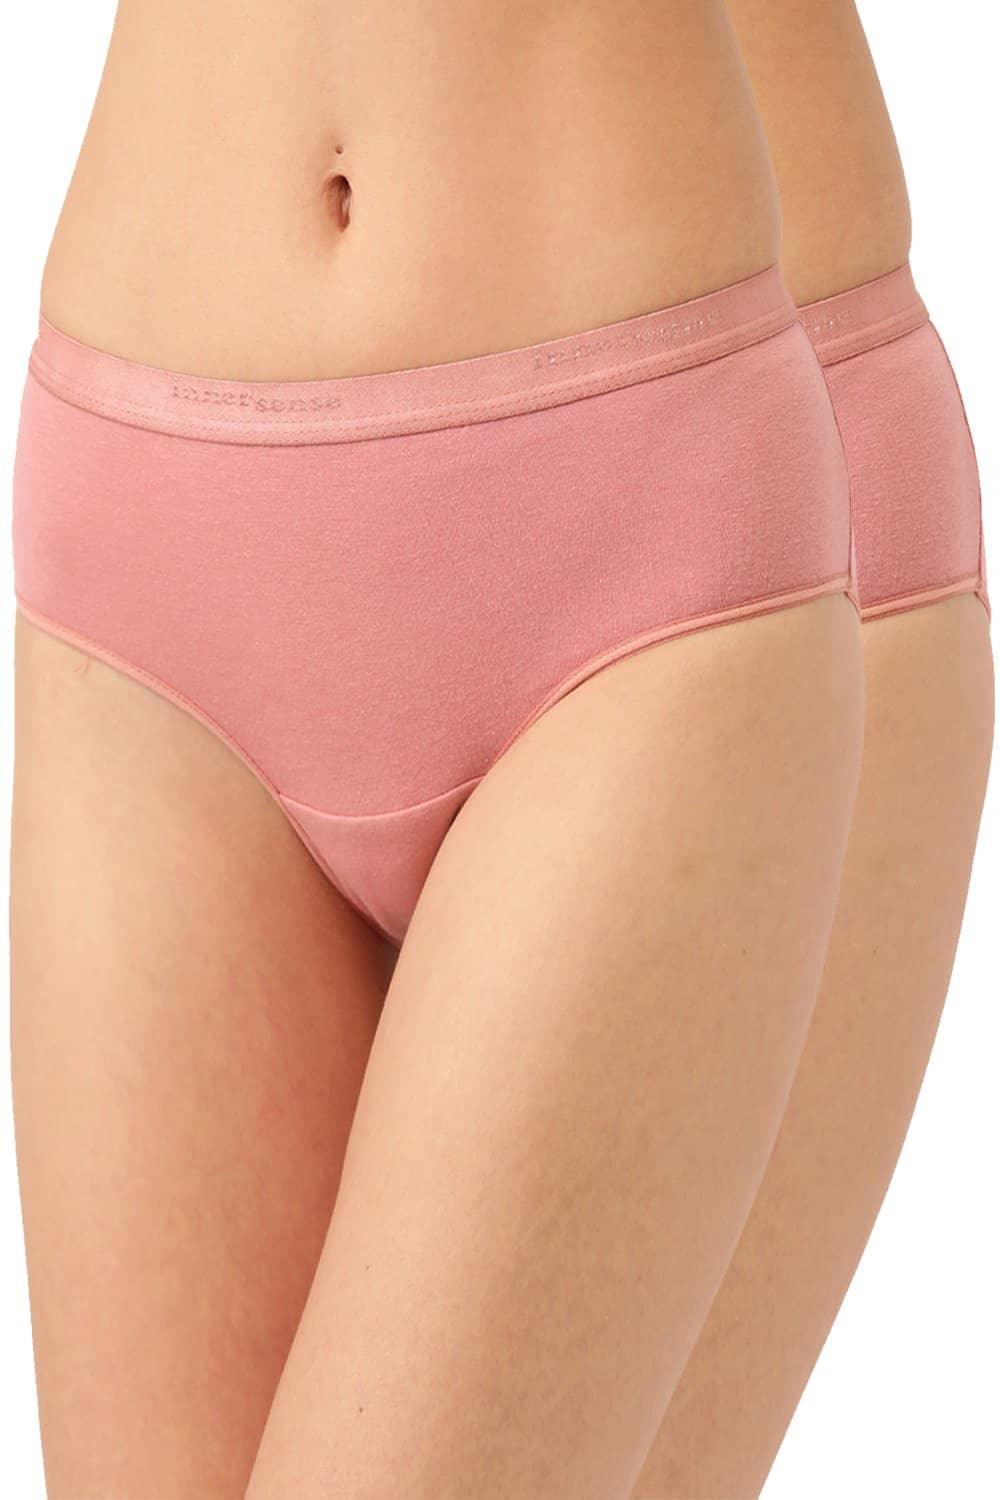 Inner Sense Organic Cotton Antimicrobial High waist Hipster (Pack Of 2)